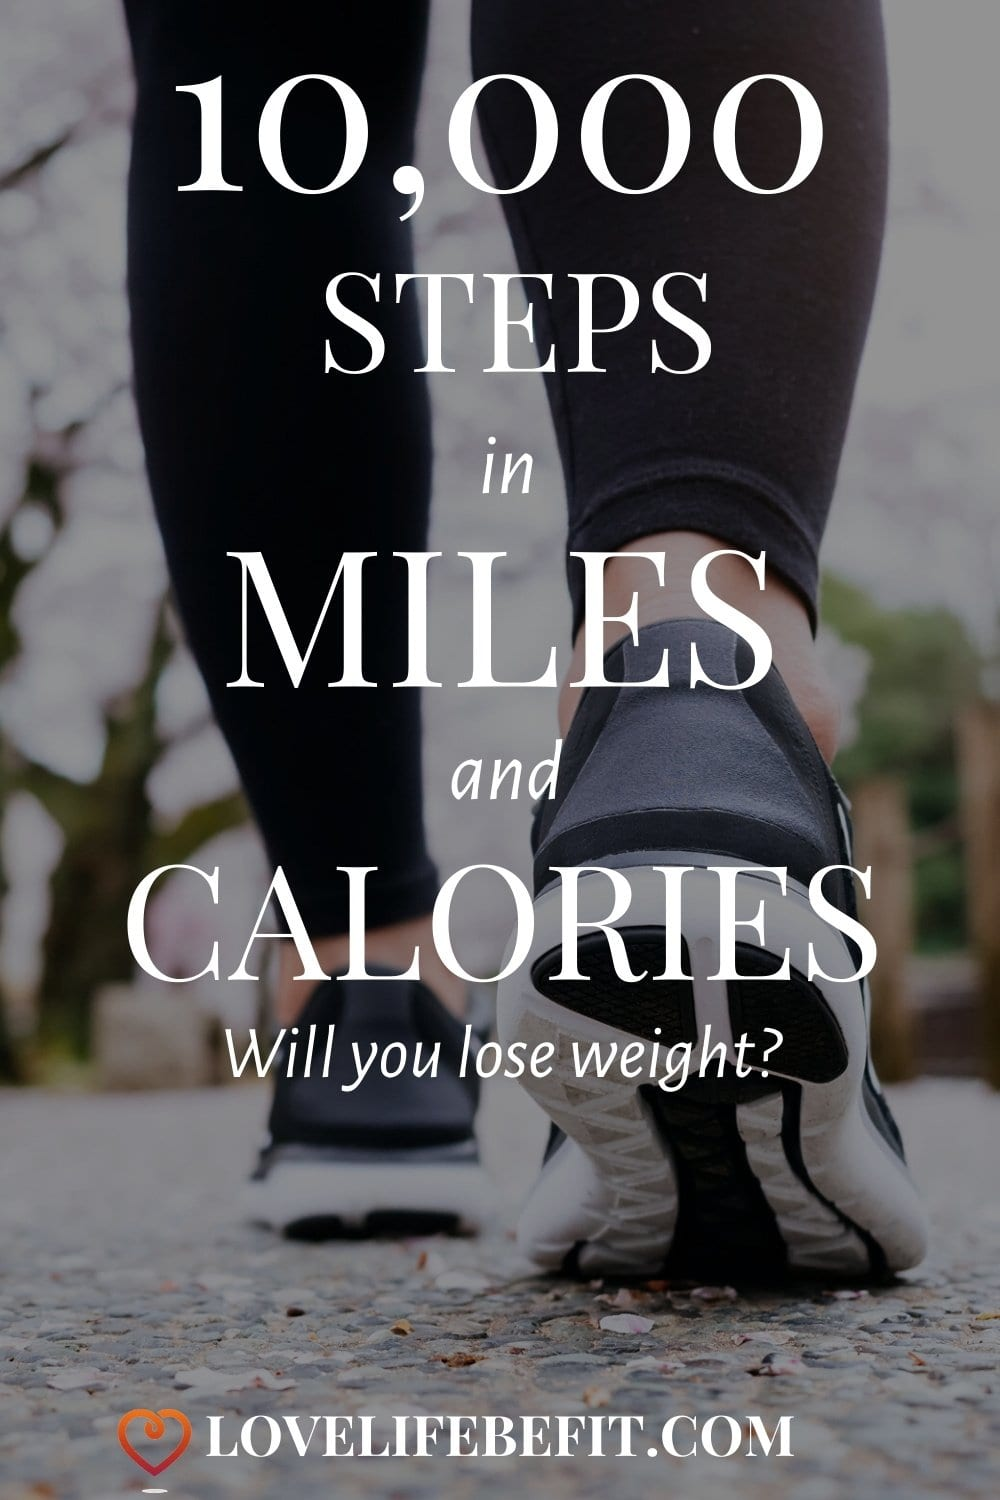 Planning on walking 10,000 steps a day? How much is 10,000 steps in miles and will it help you burn enough calories to lose weight? #weightloss #10000steps #fitness